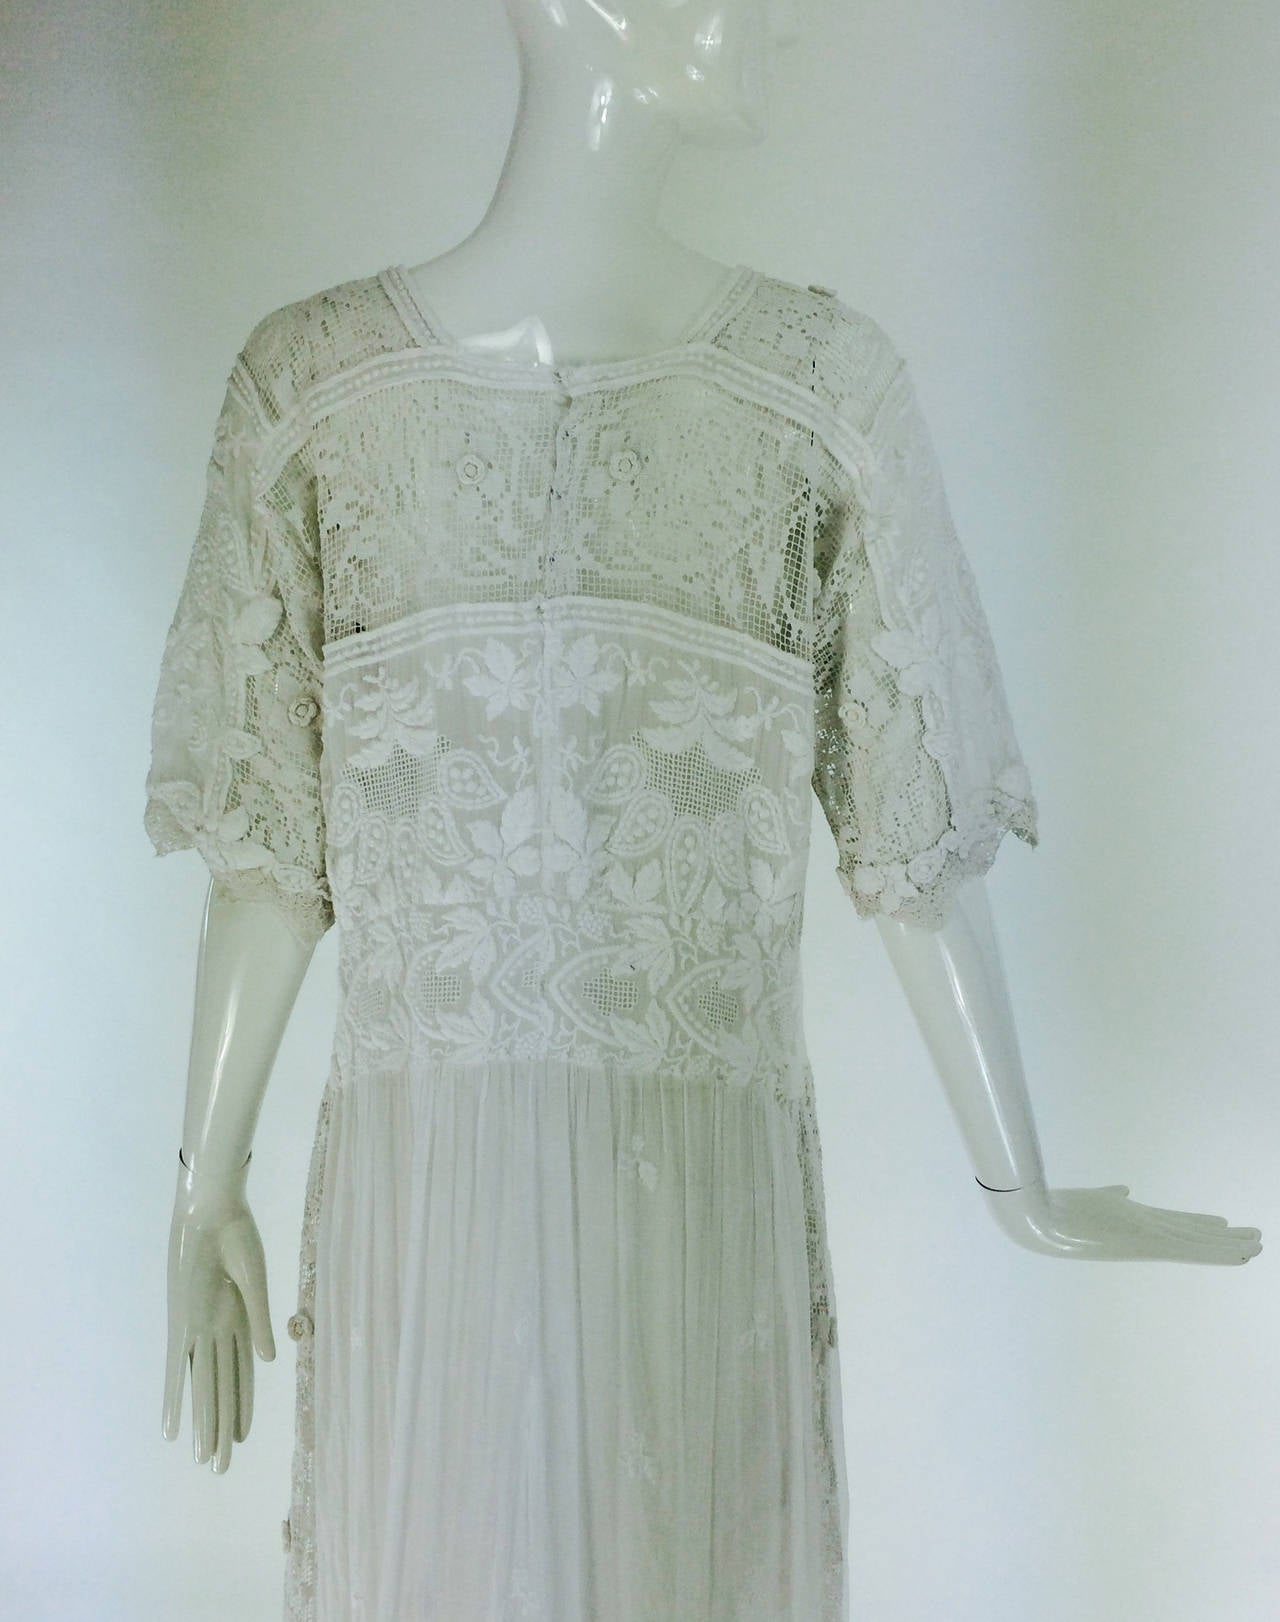 Edwardian embroidered white batiste & handmade lace dress 7